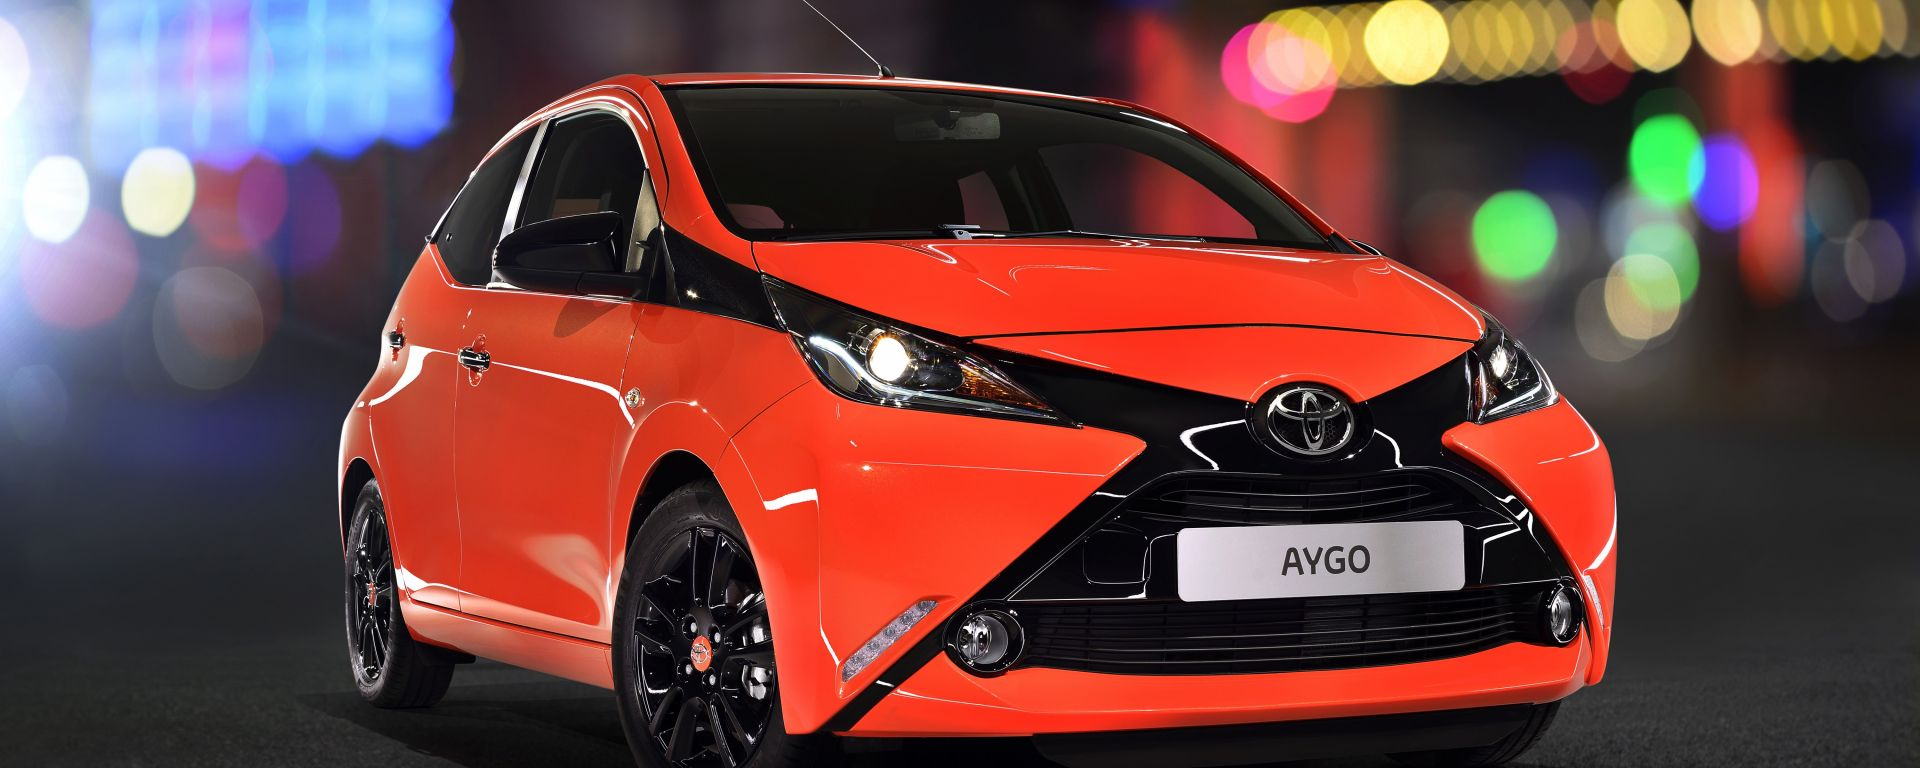 anteprima toyota aygo 2014 nuove foto e info motorbox. Black Bedroom Furniture Sets. Home Design Ideas